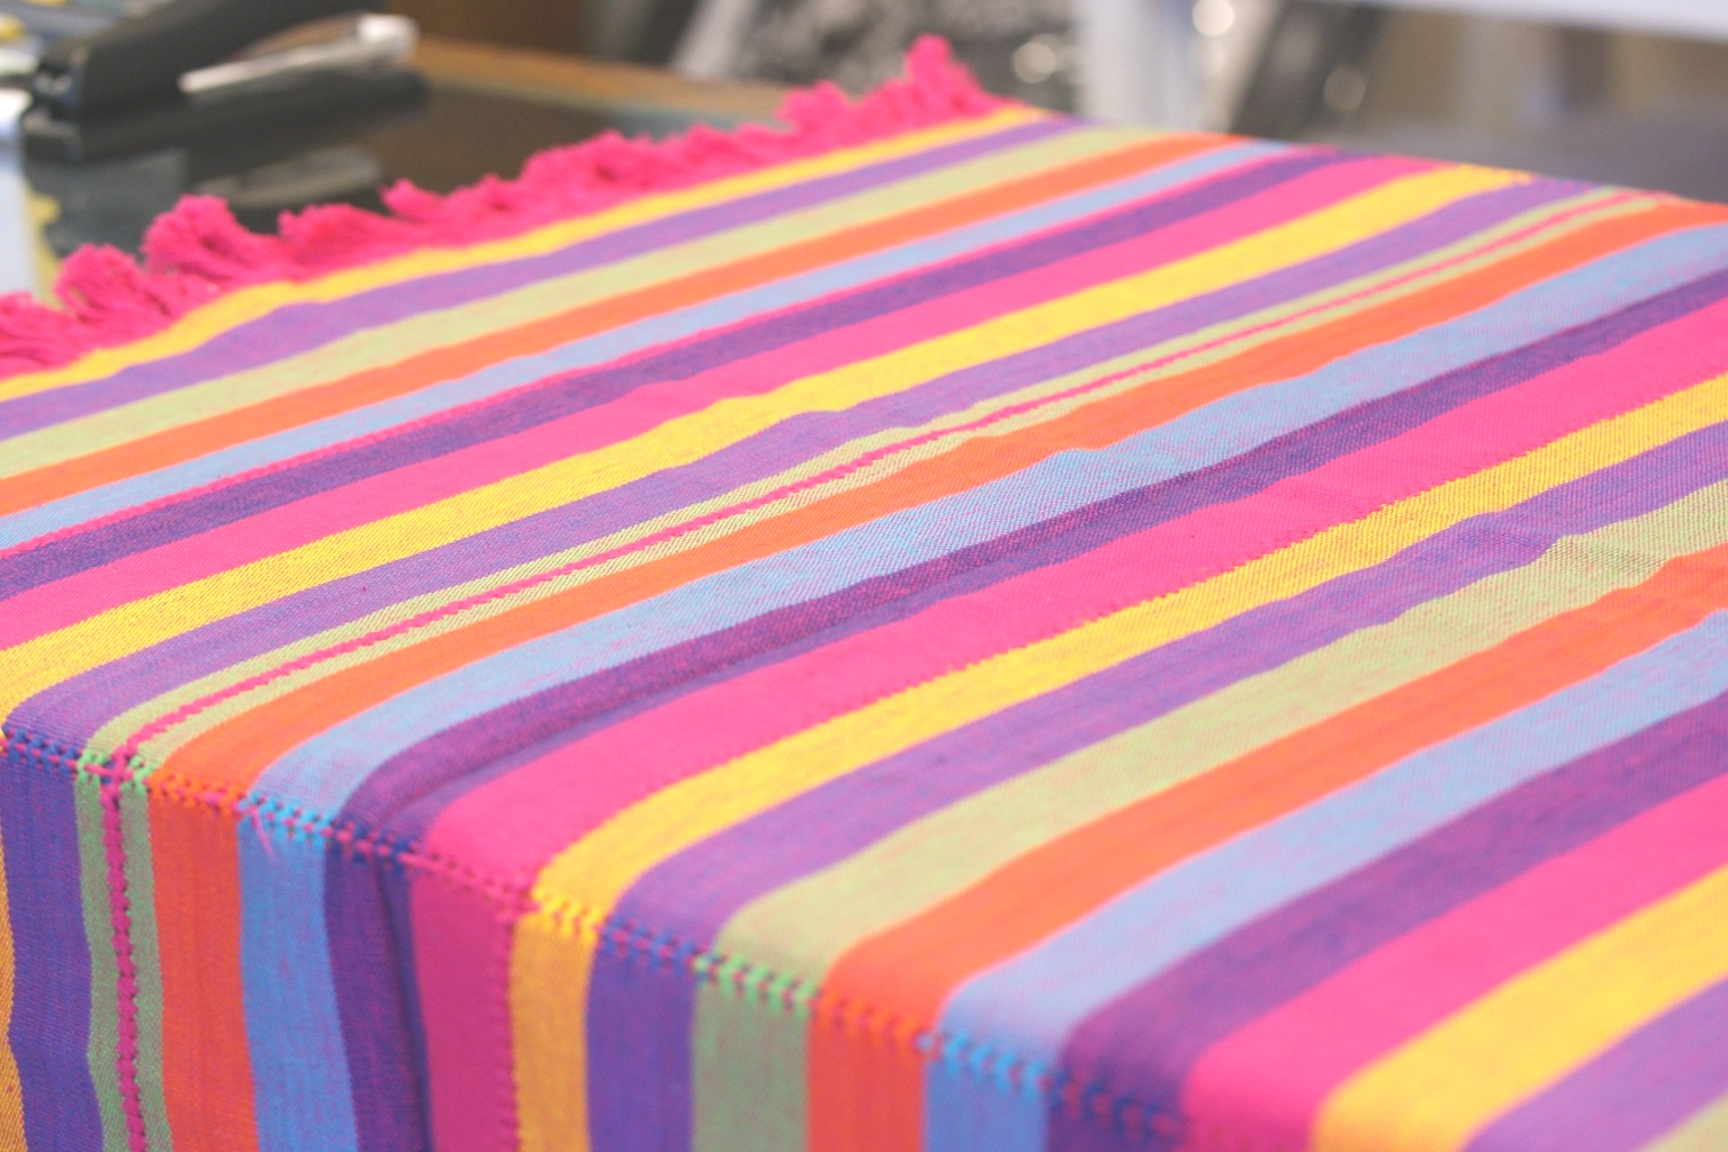 fiesta table linens | Colorful Cotton Tablecloths and Napkins from Patzcuaro | Zinnia ..